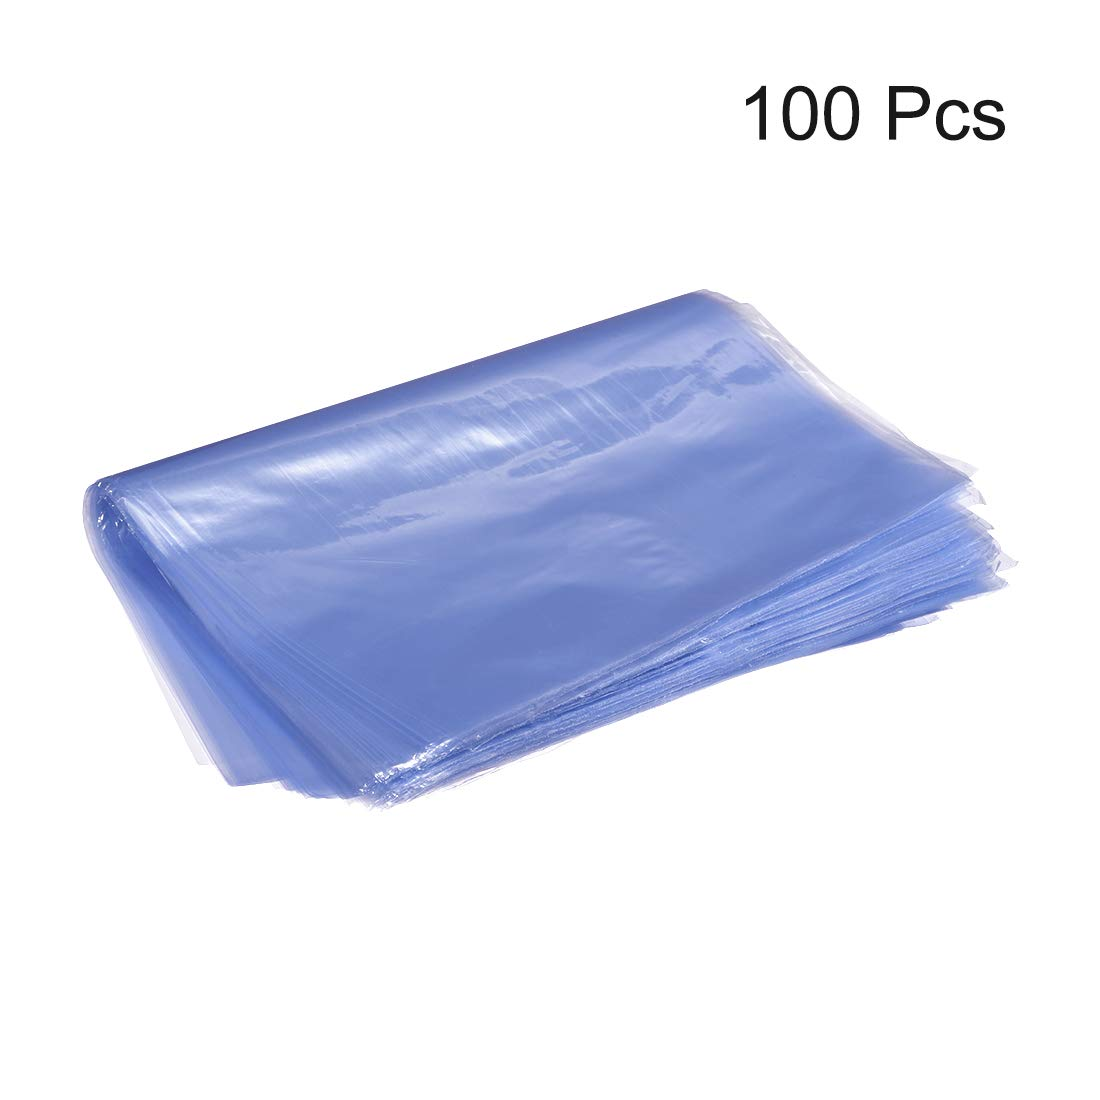 PVC Heat Shrink Wrap Bags 10x6 inch 100pcs Shrinkable Wrapping Packaging Bags Industrial Packaging Sealer Bags uxcell Shrink Bags